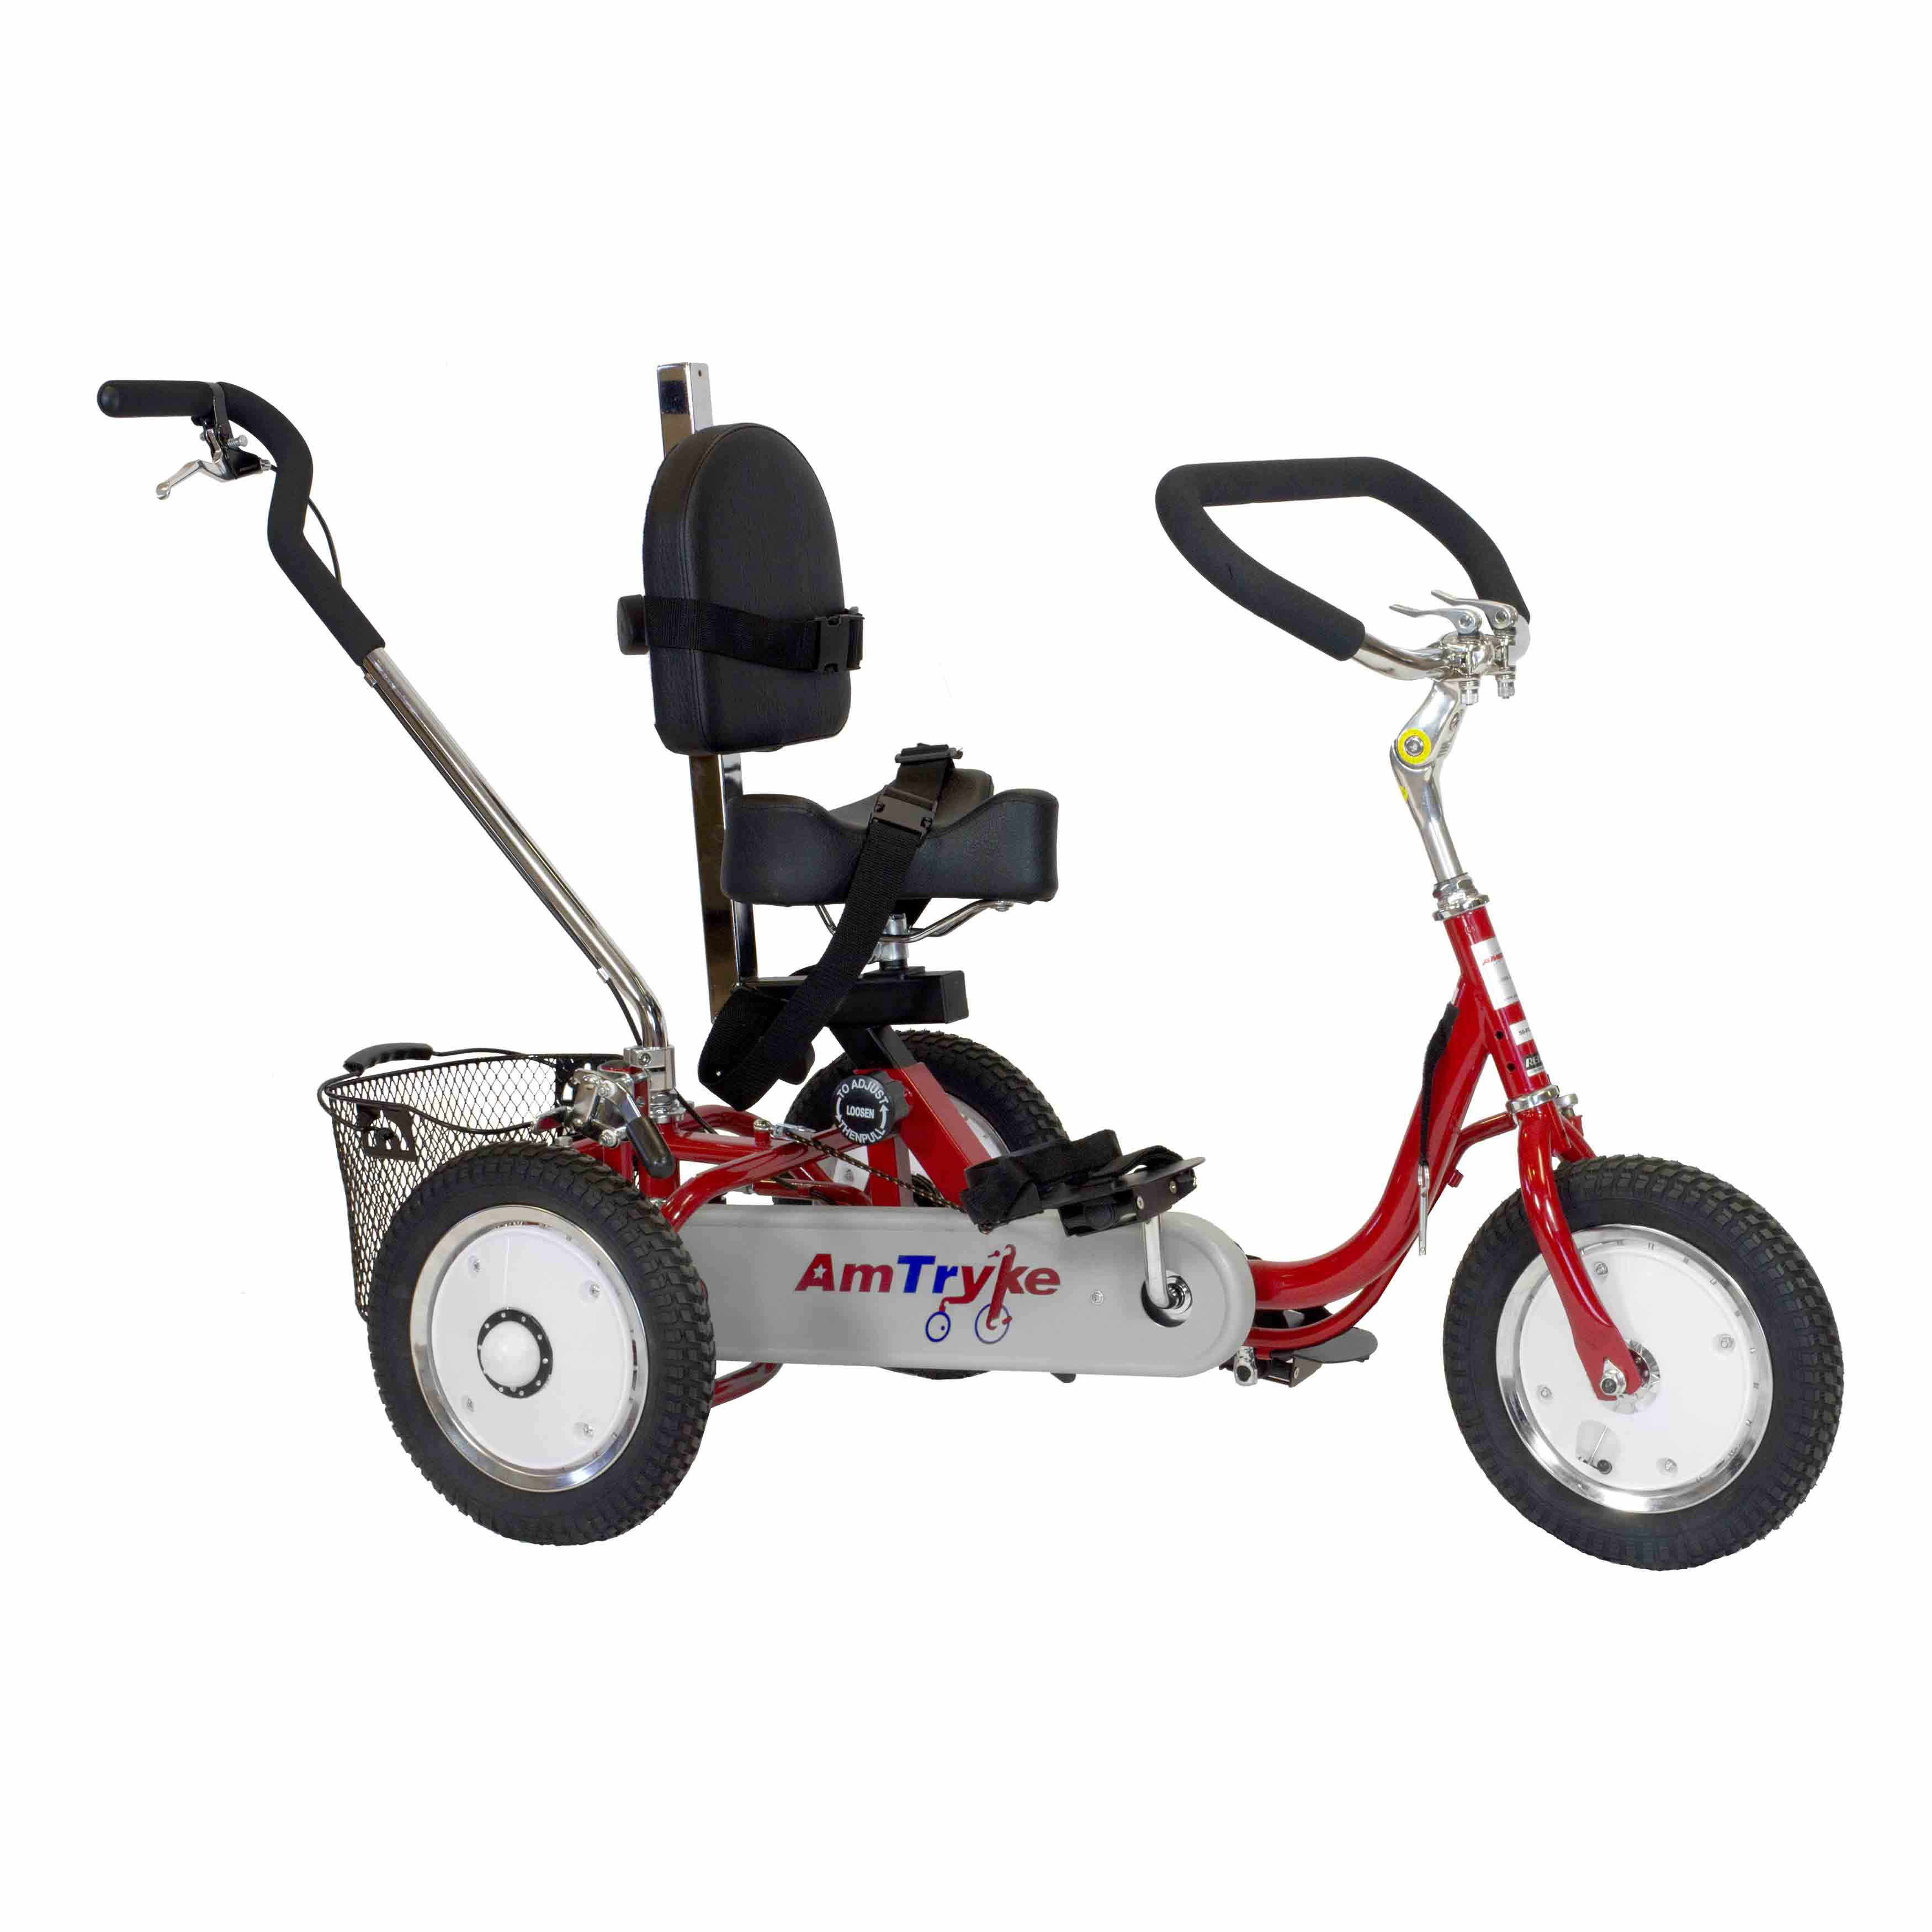 Amtryke ProSeries 1412 tricycle with 1600 seat system